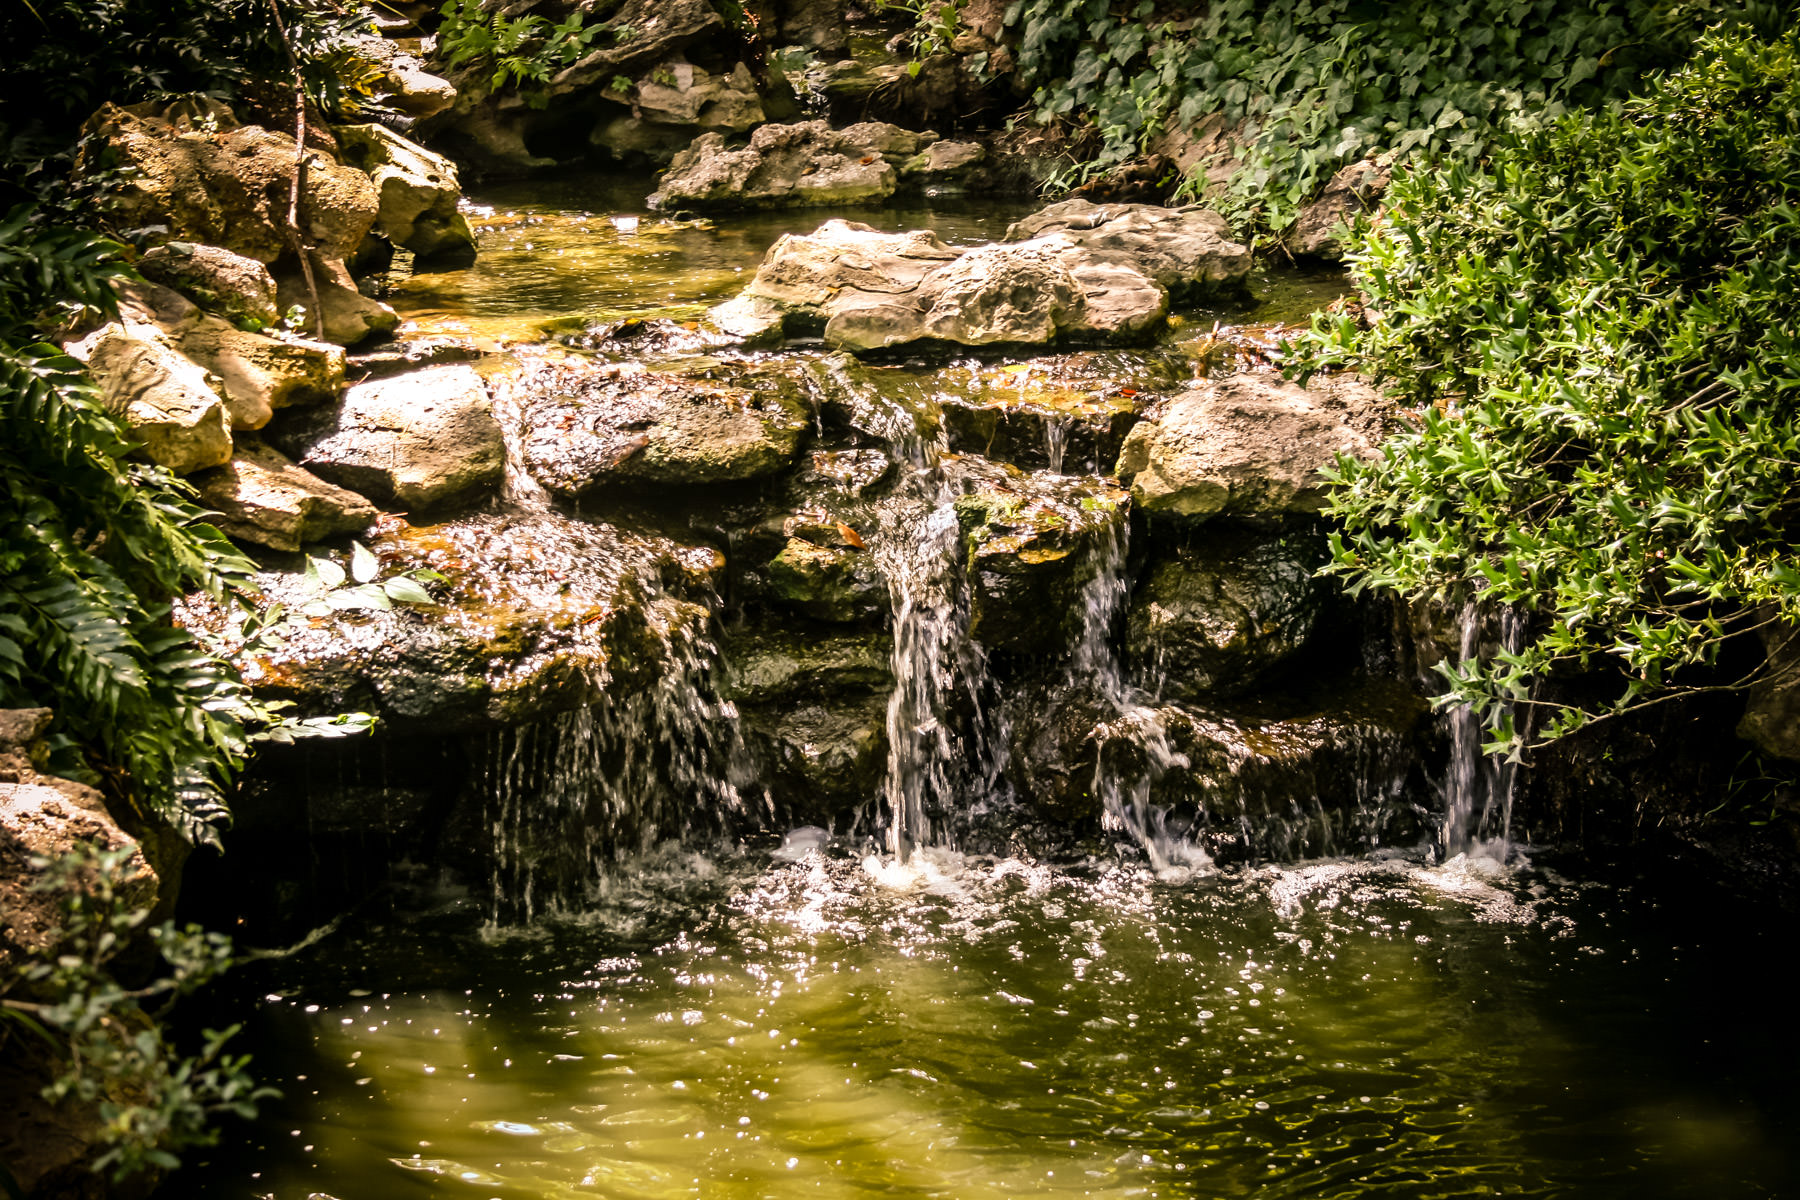 A waterfall at the Fort Worth Botanic Gardens.